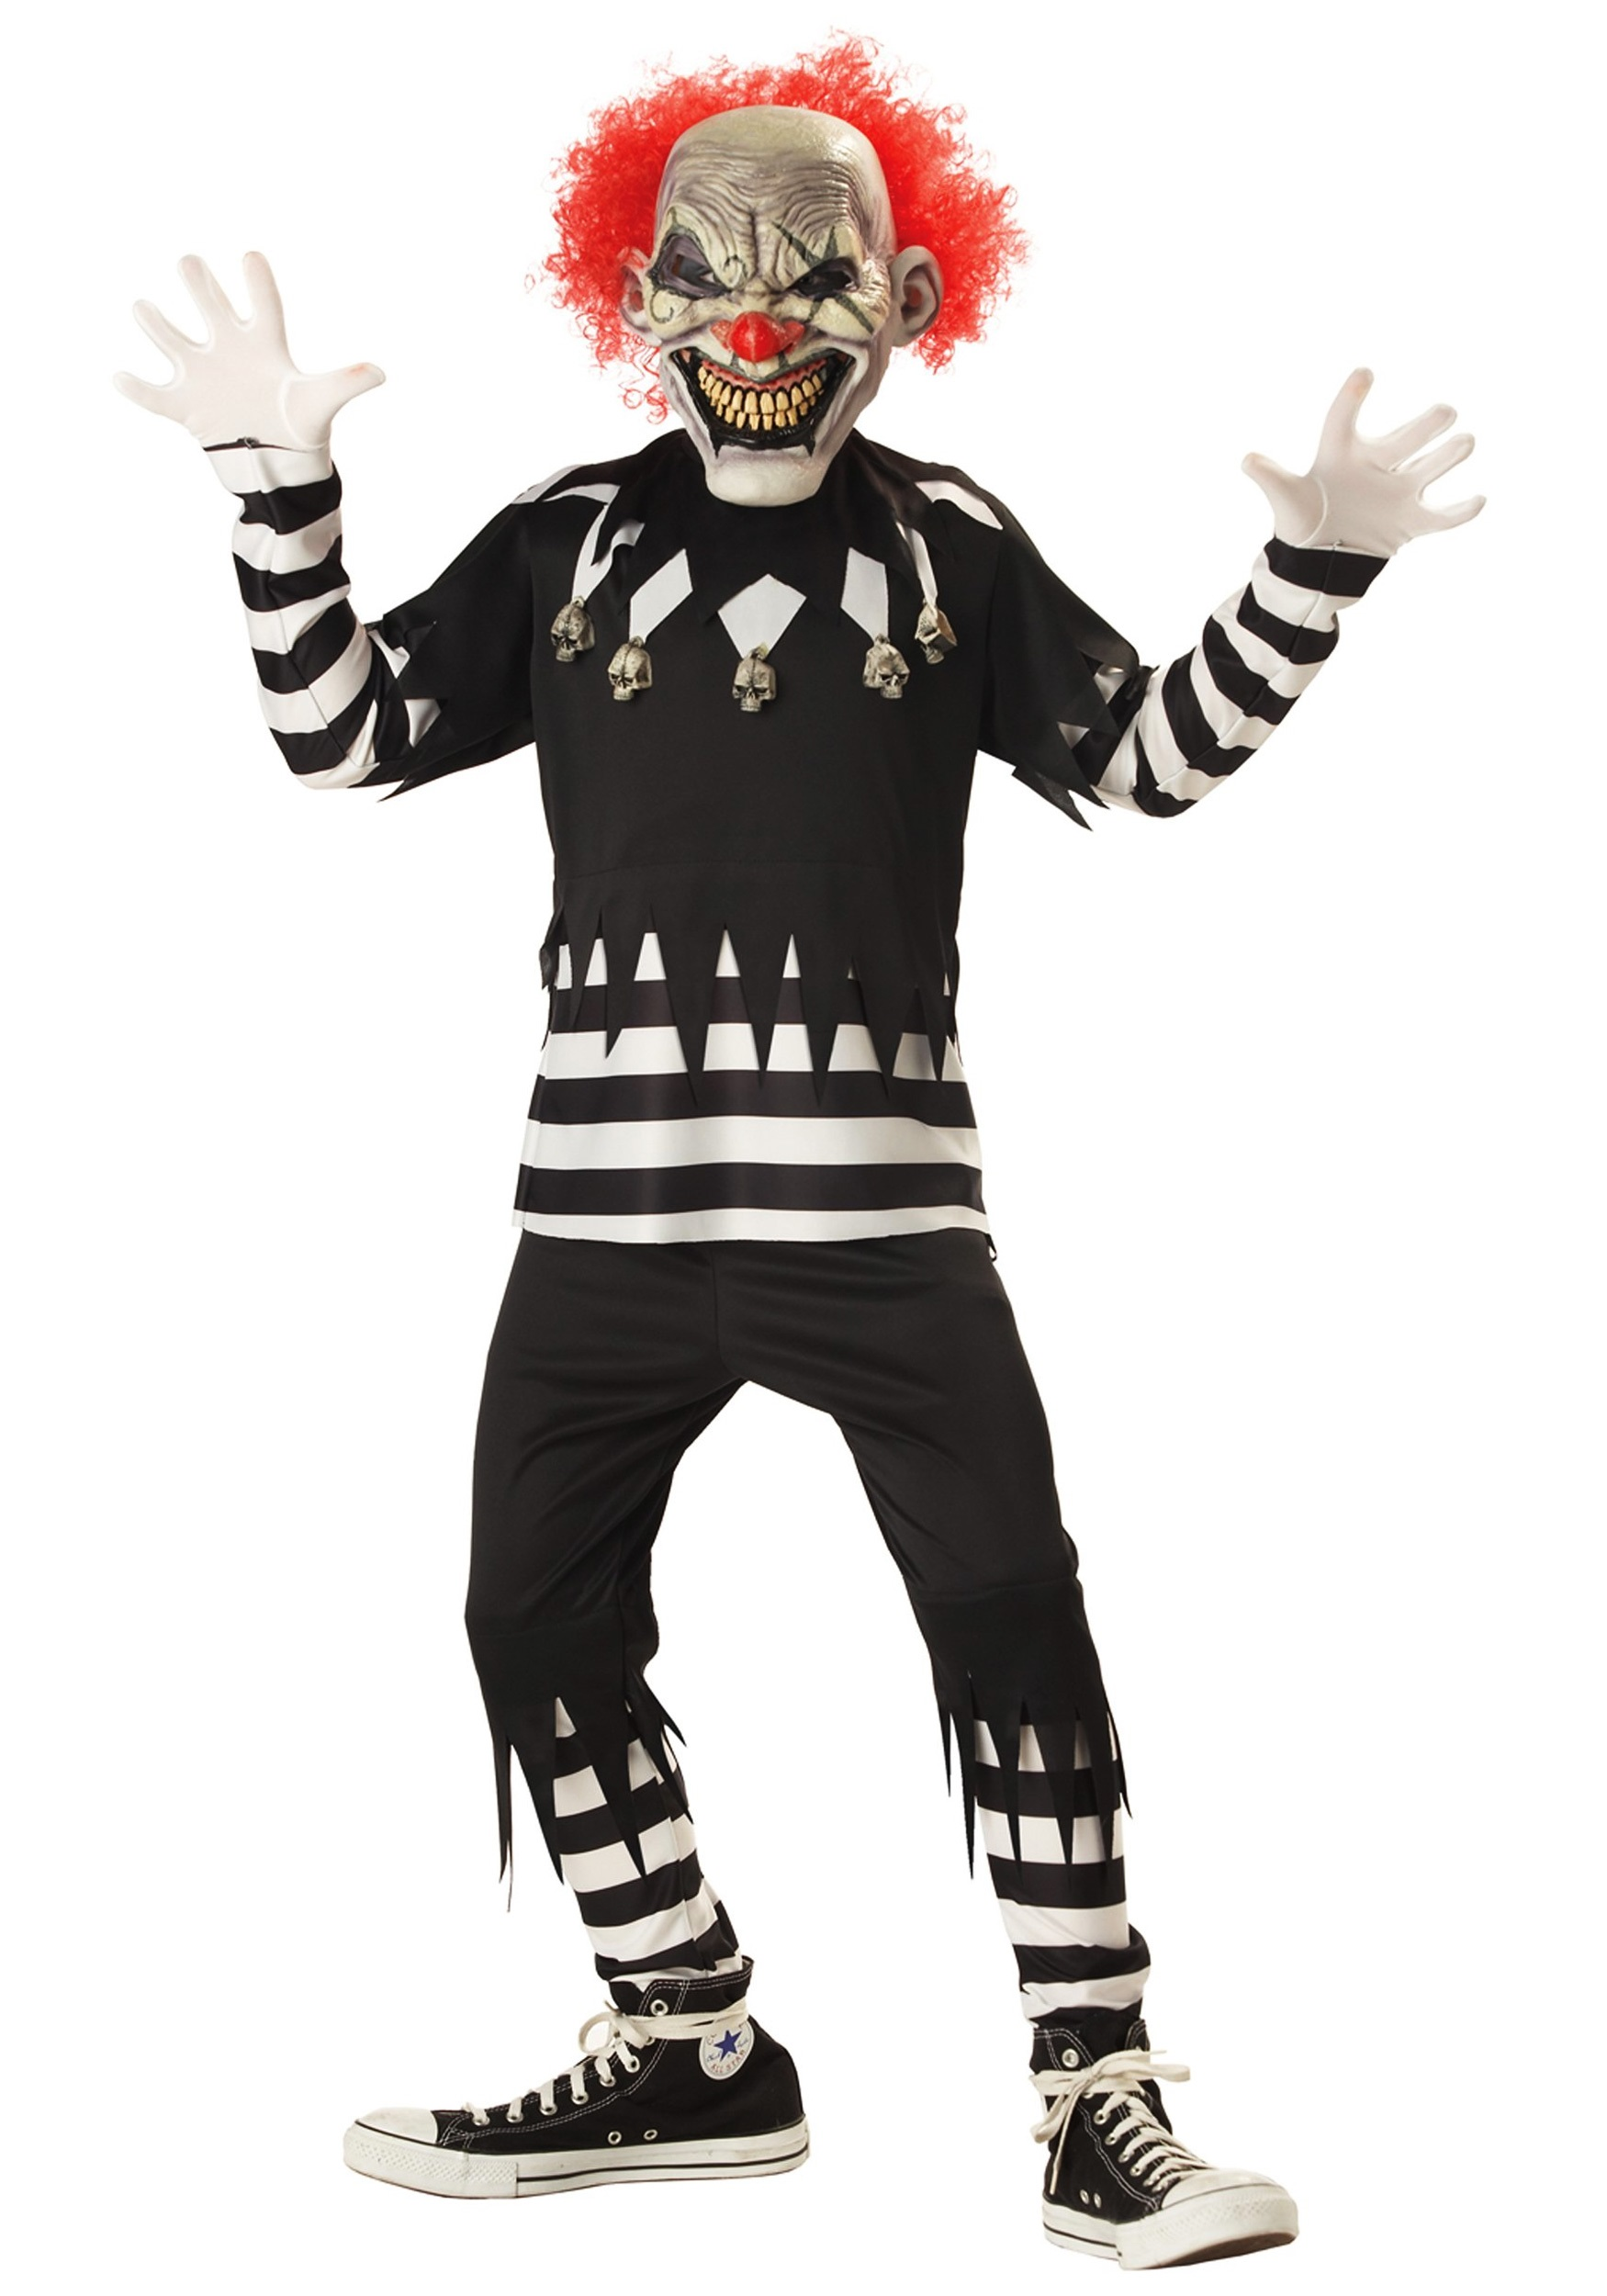 Kids Scary Clown Costume  sc 1 st  Halloween Costume & Kids Scary Clown Costume - Child Clown Costumes